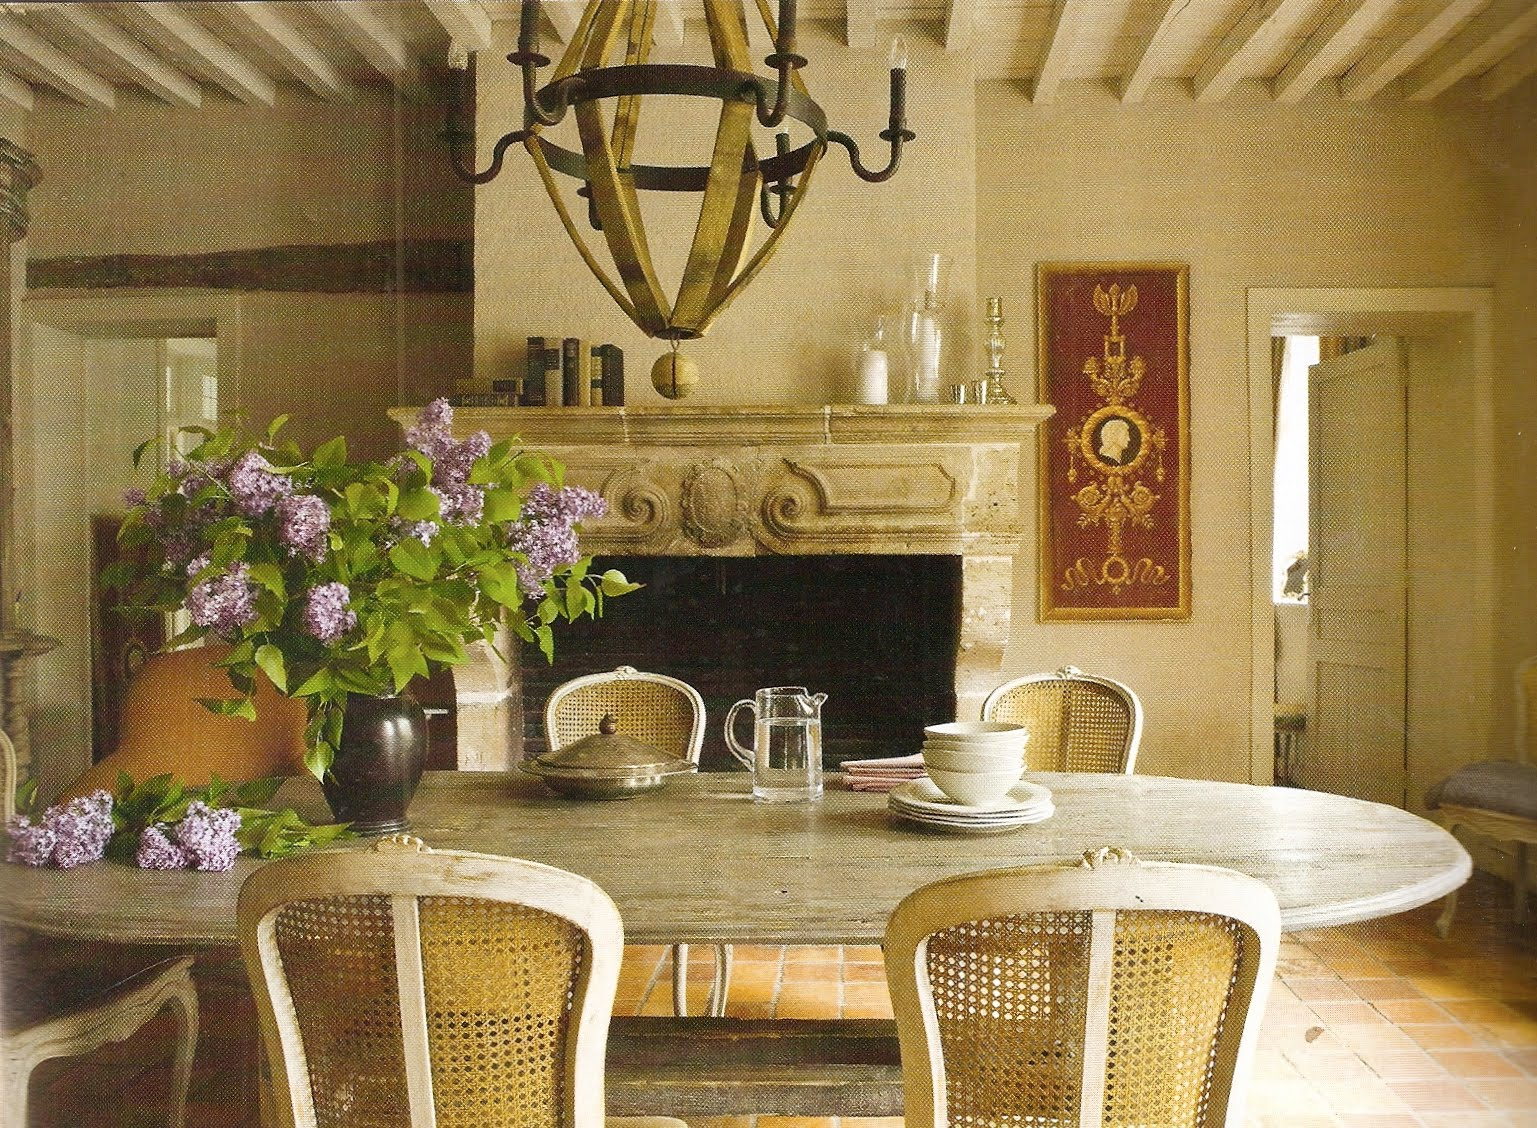 More Inspiration from Provence!